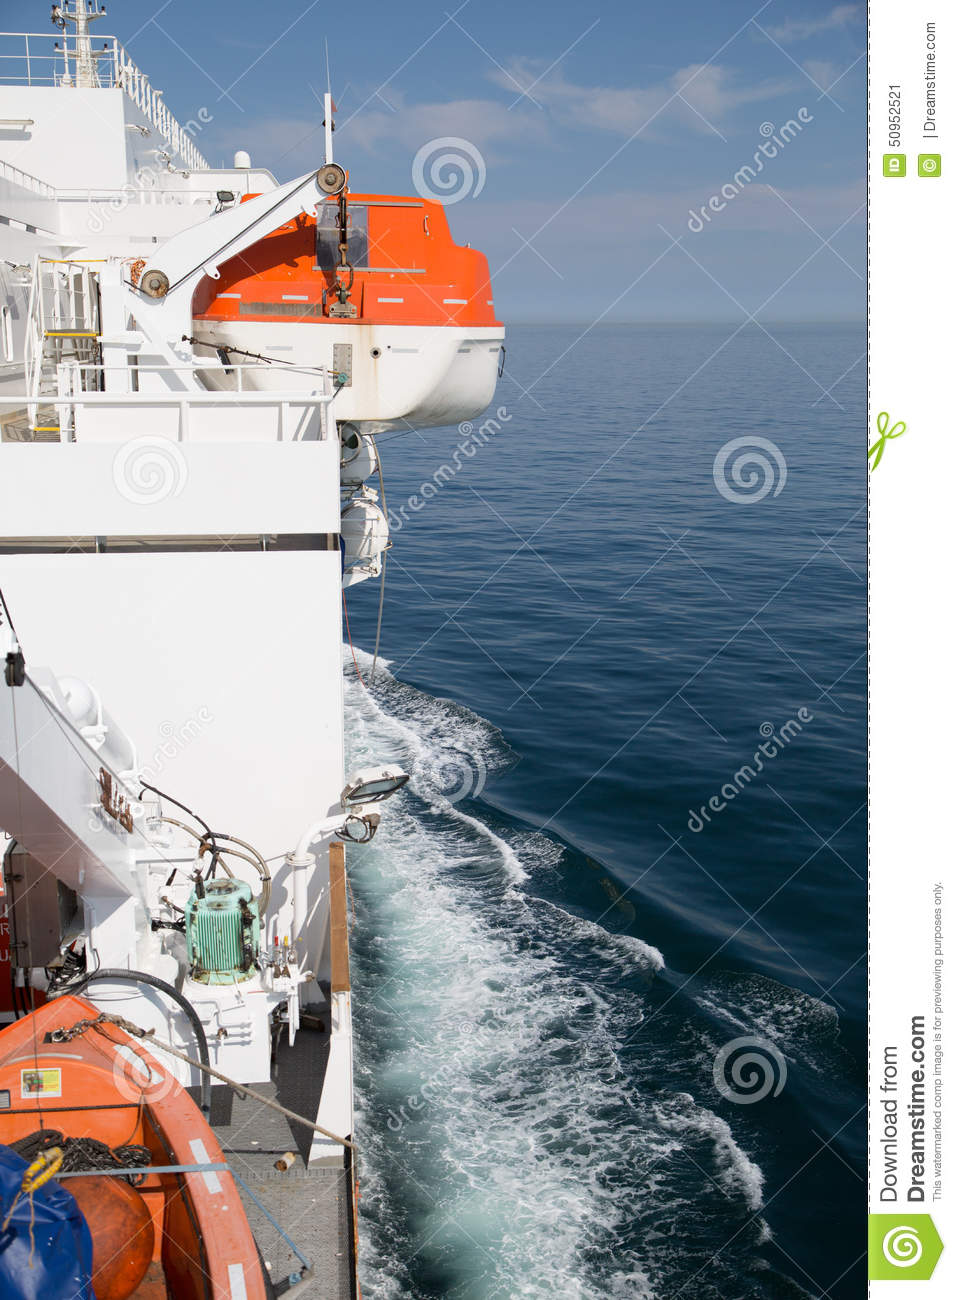 Lifeboat on the ship